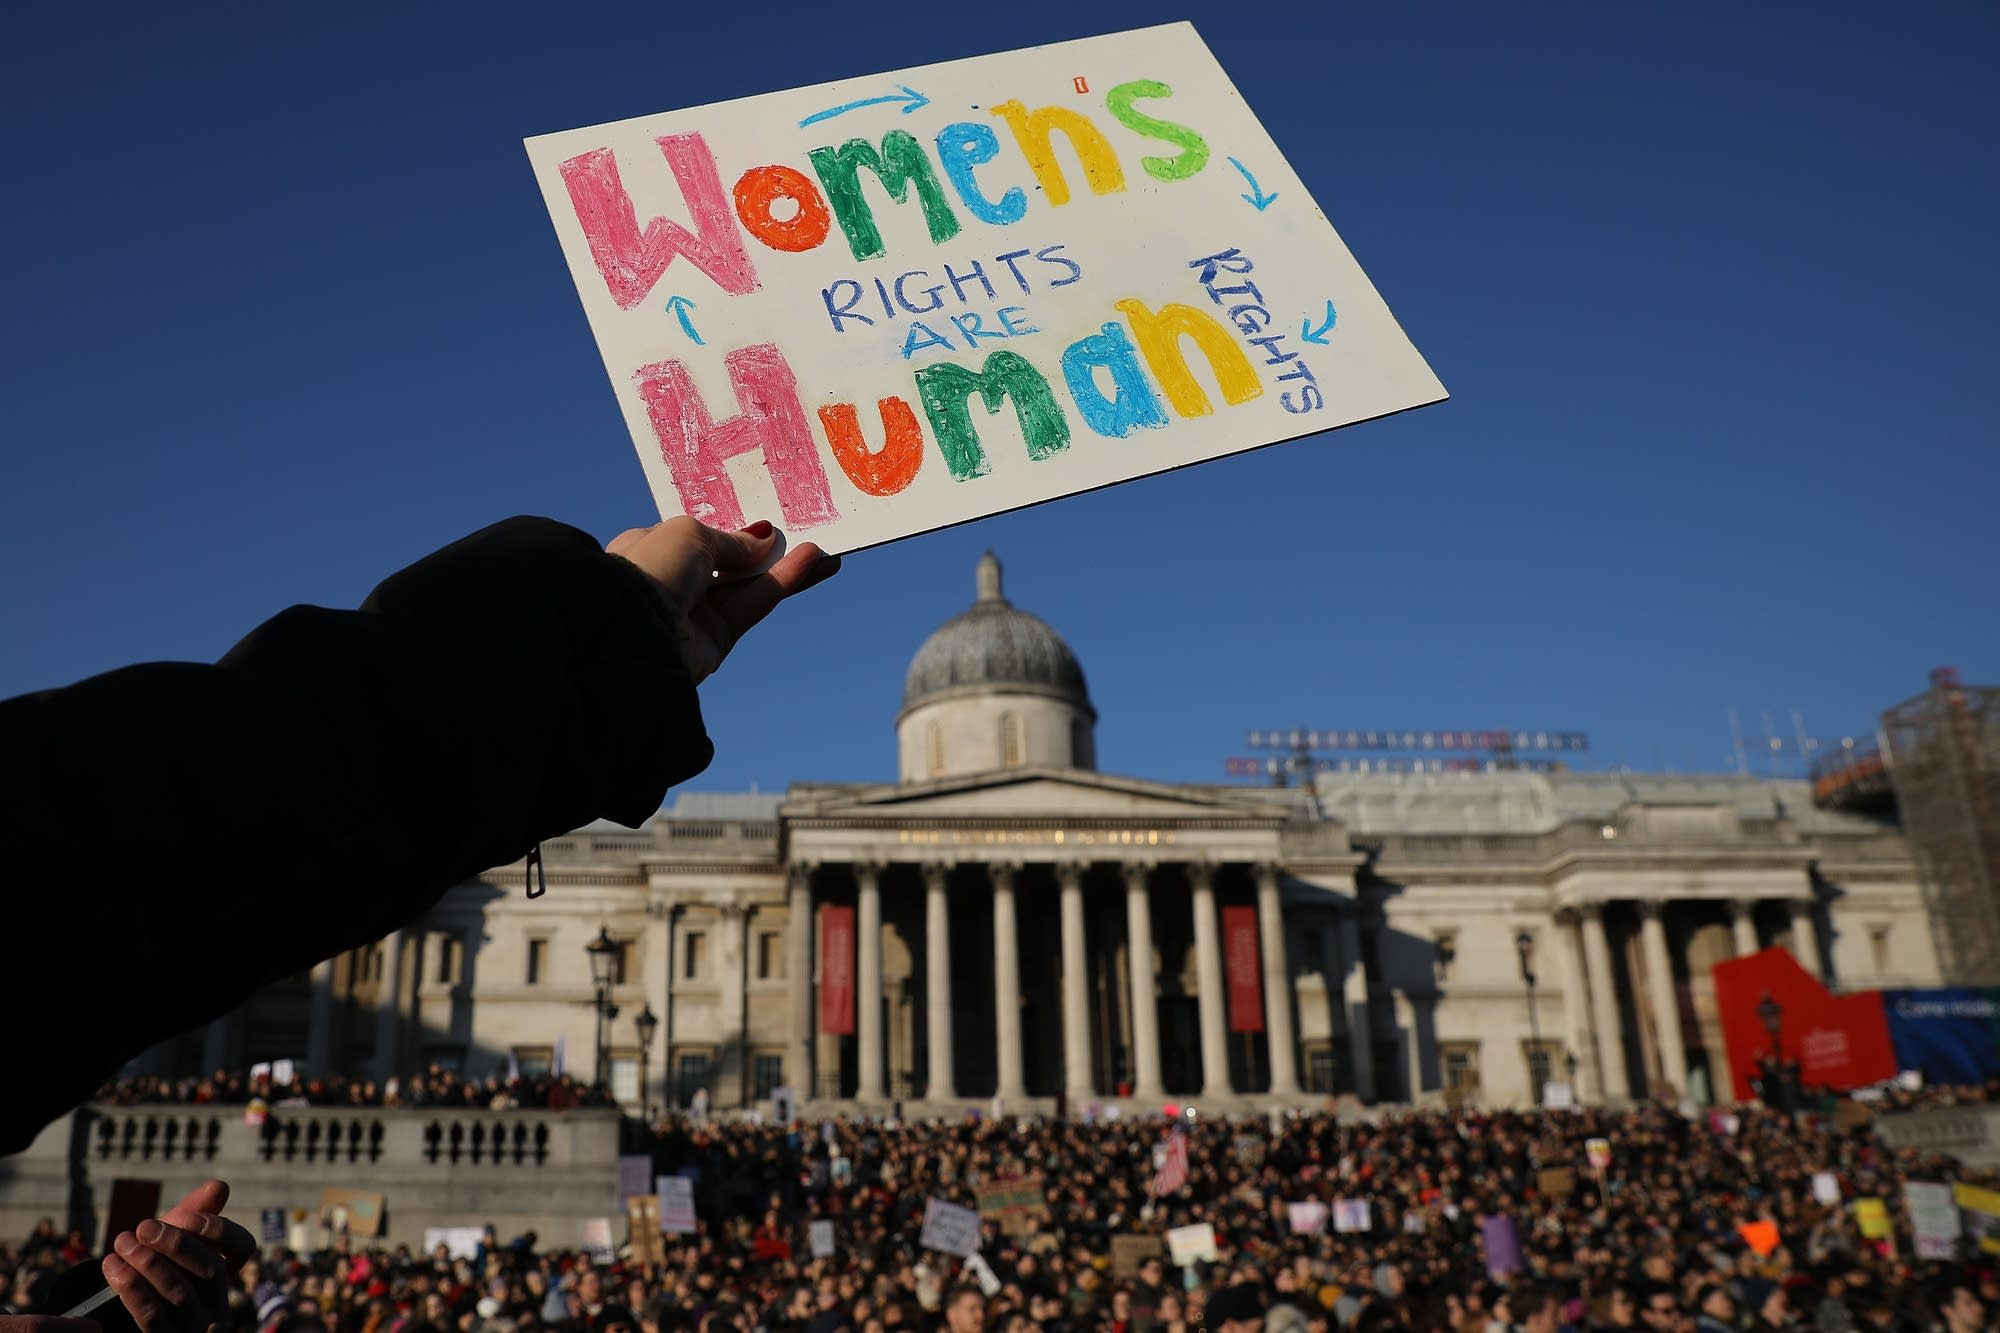 London, England: Protesters rally for women's rights.